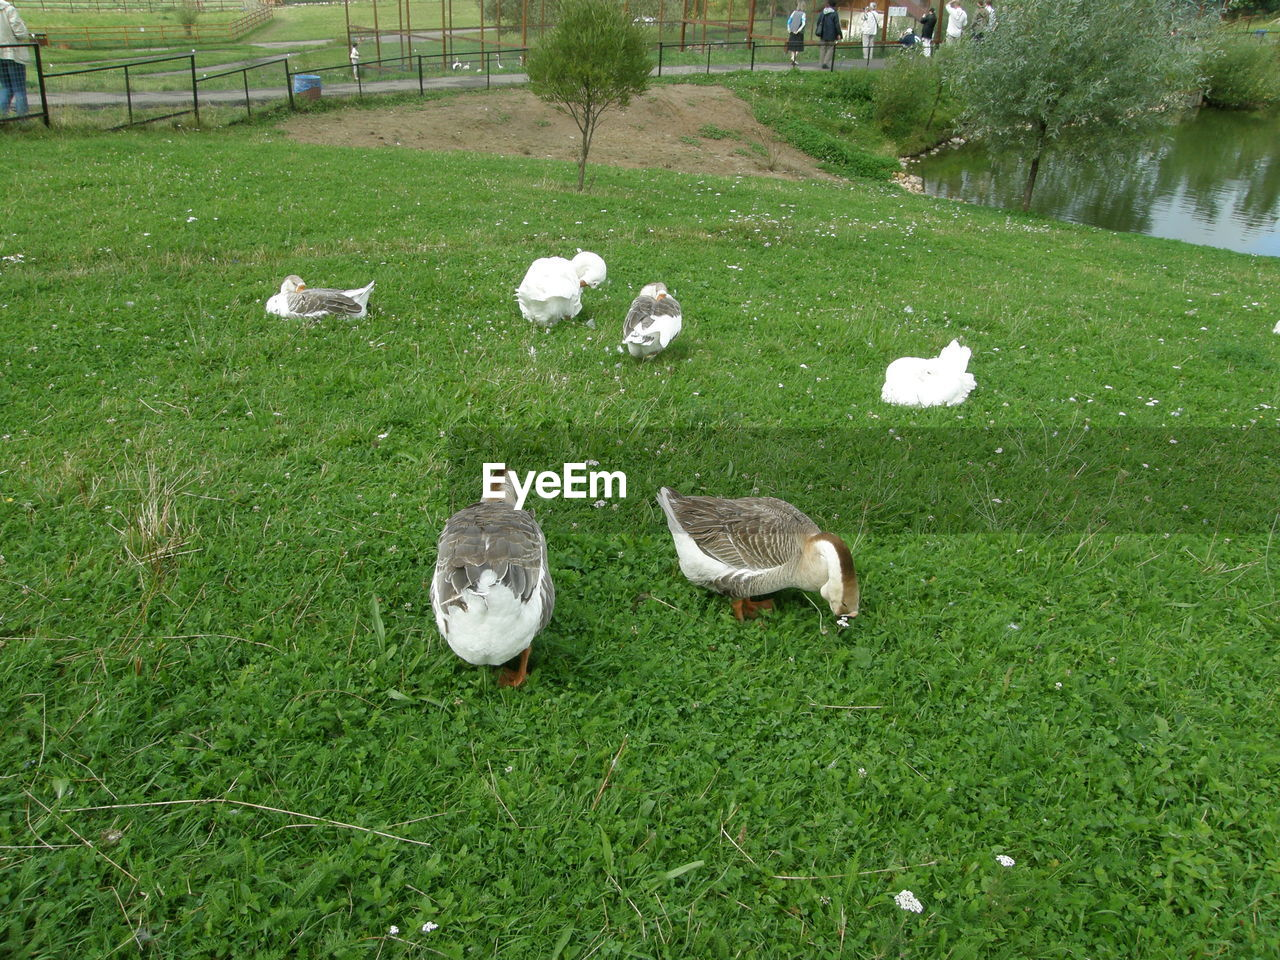 group of animals, animal themes, animal, plant, vertebrate, grass, bird, green color, nature, field, day, animals in the wild, no people, land, animal wildlife, duck, poultry, outdoors, domestic, large group of animals, animal family